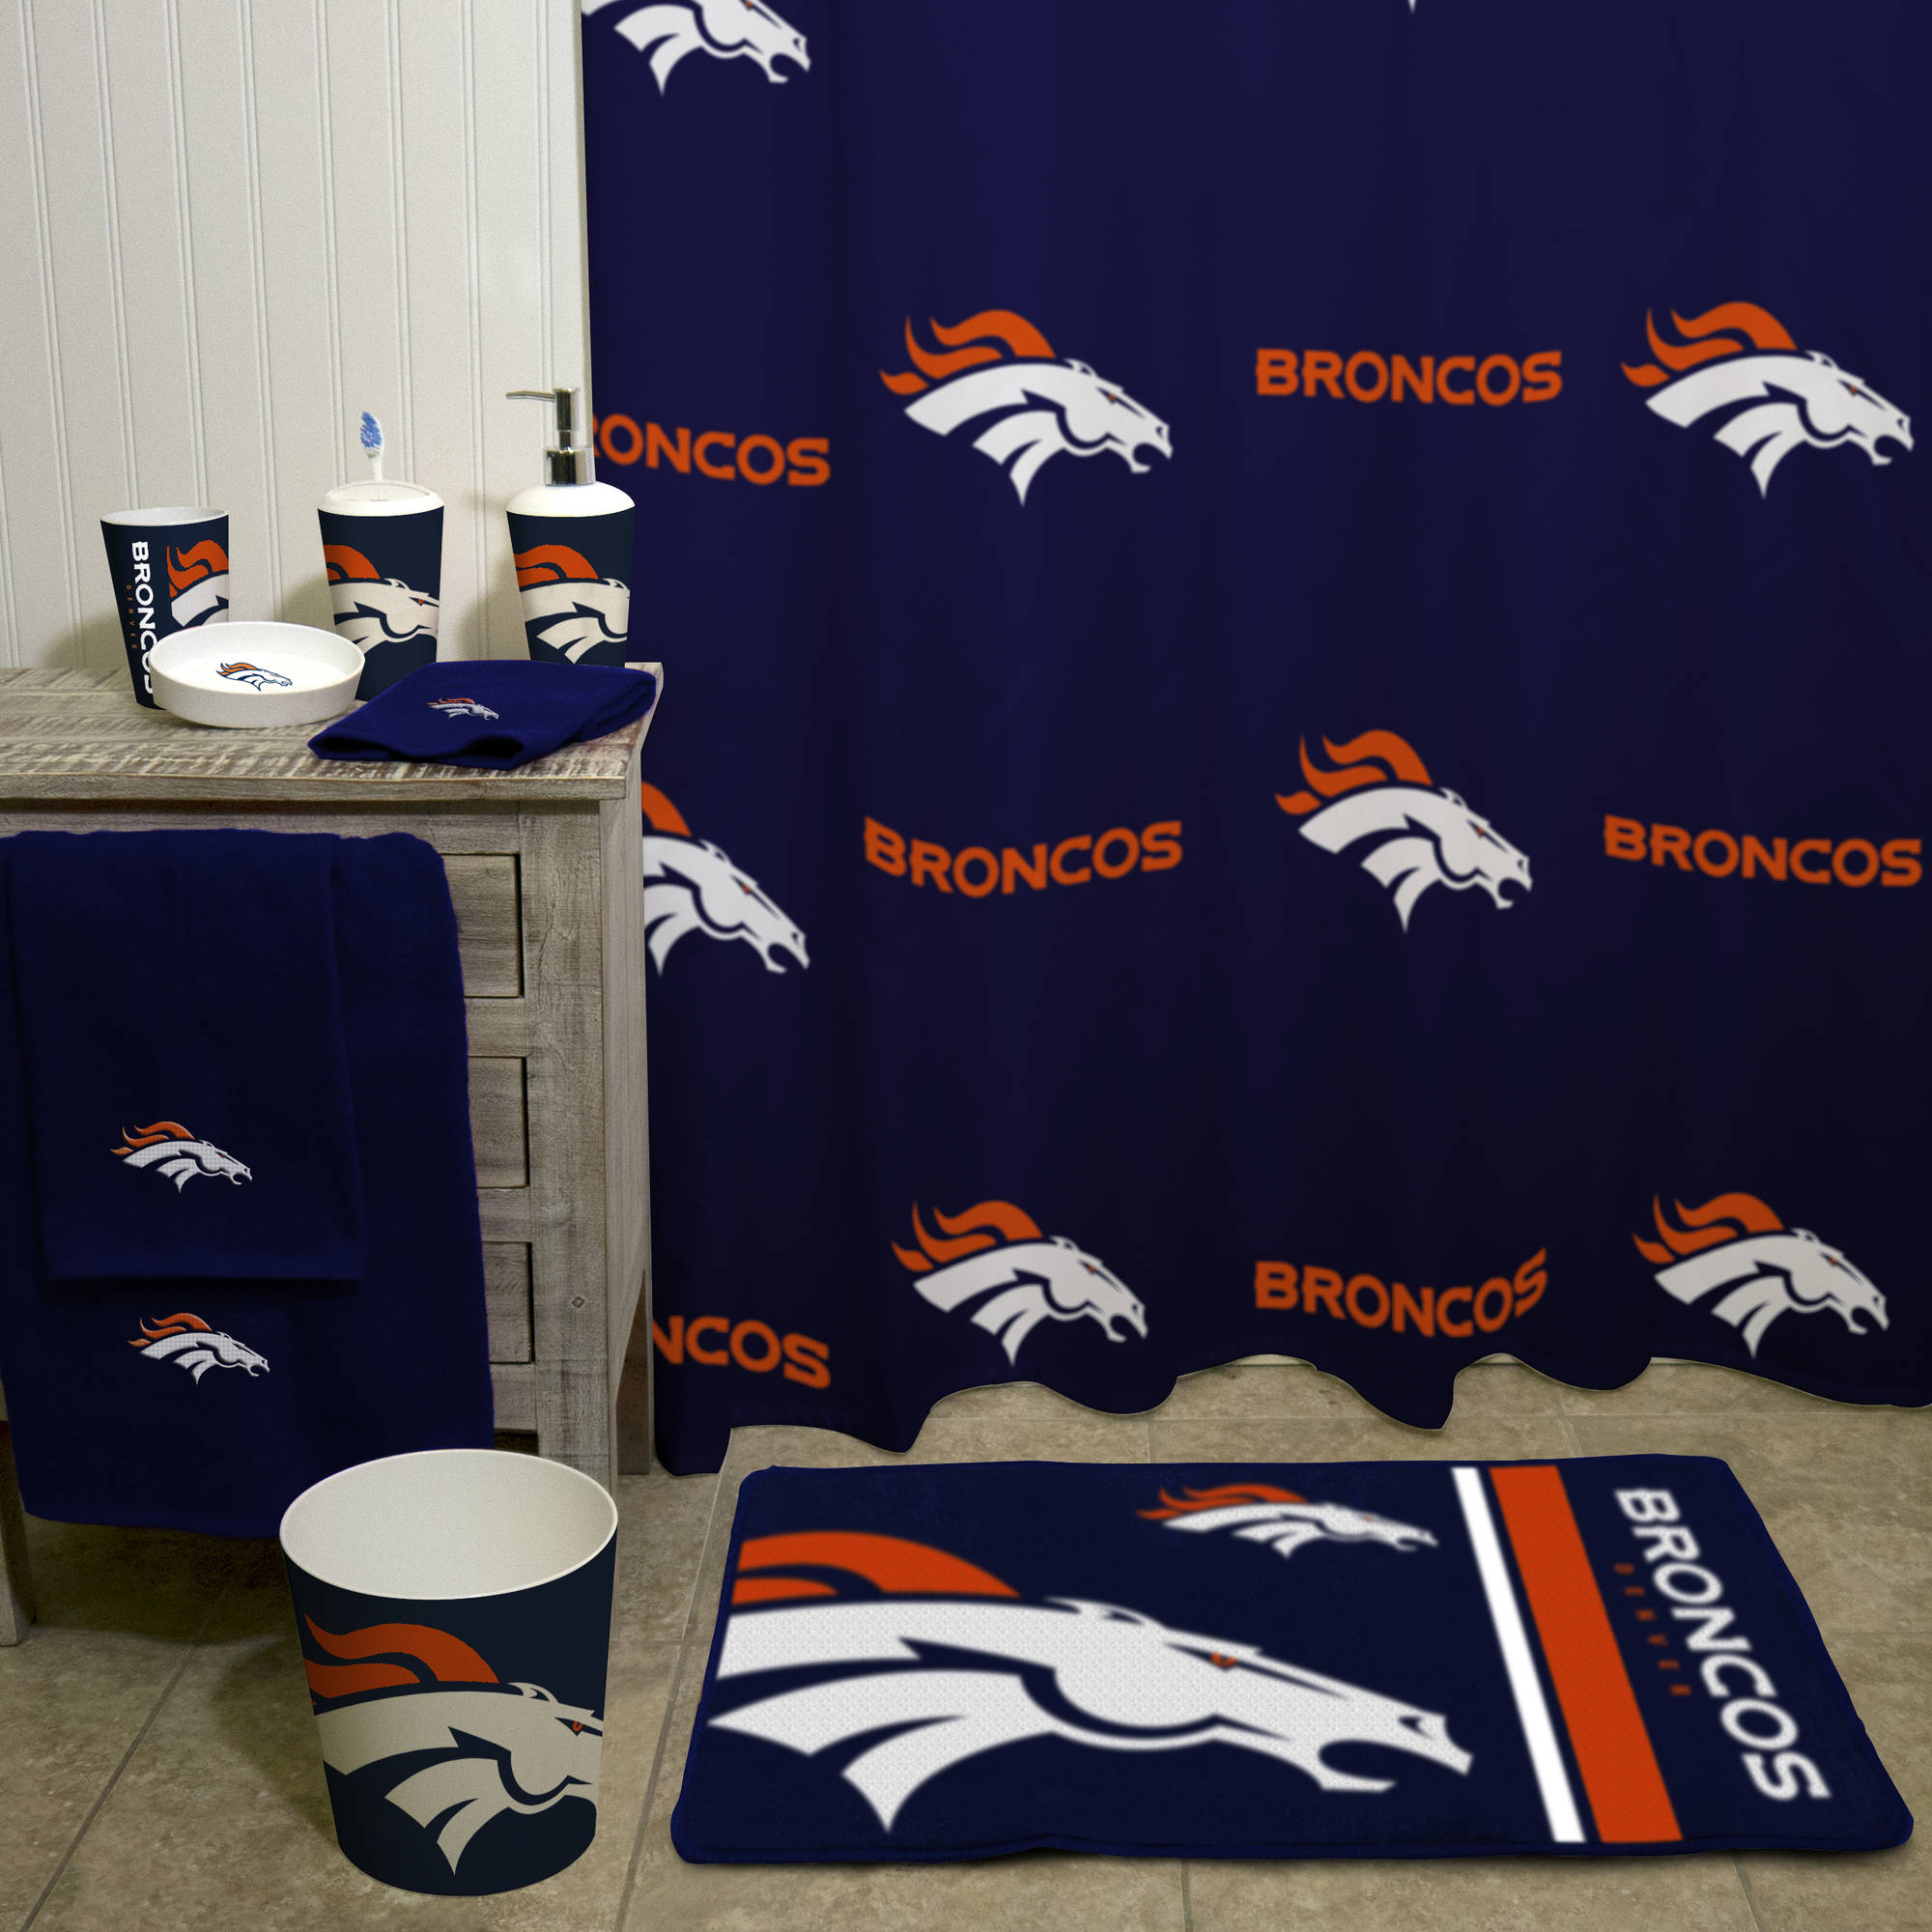 92 Denver Broncos Living Room Denver Broncos Football Team Collection Ceiling Fan Banner